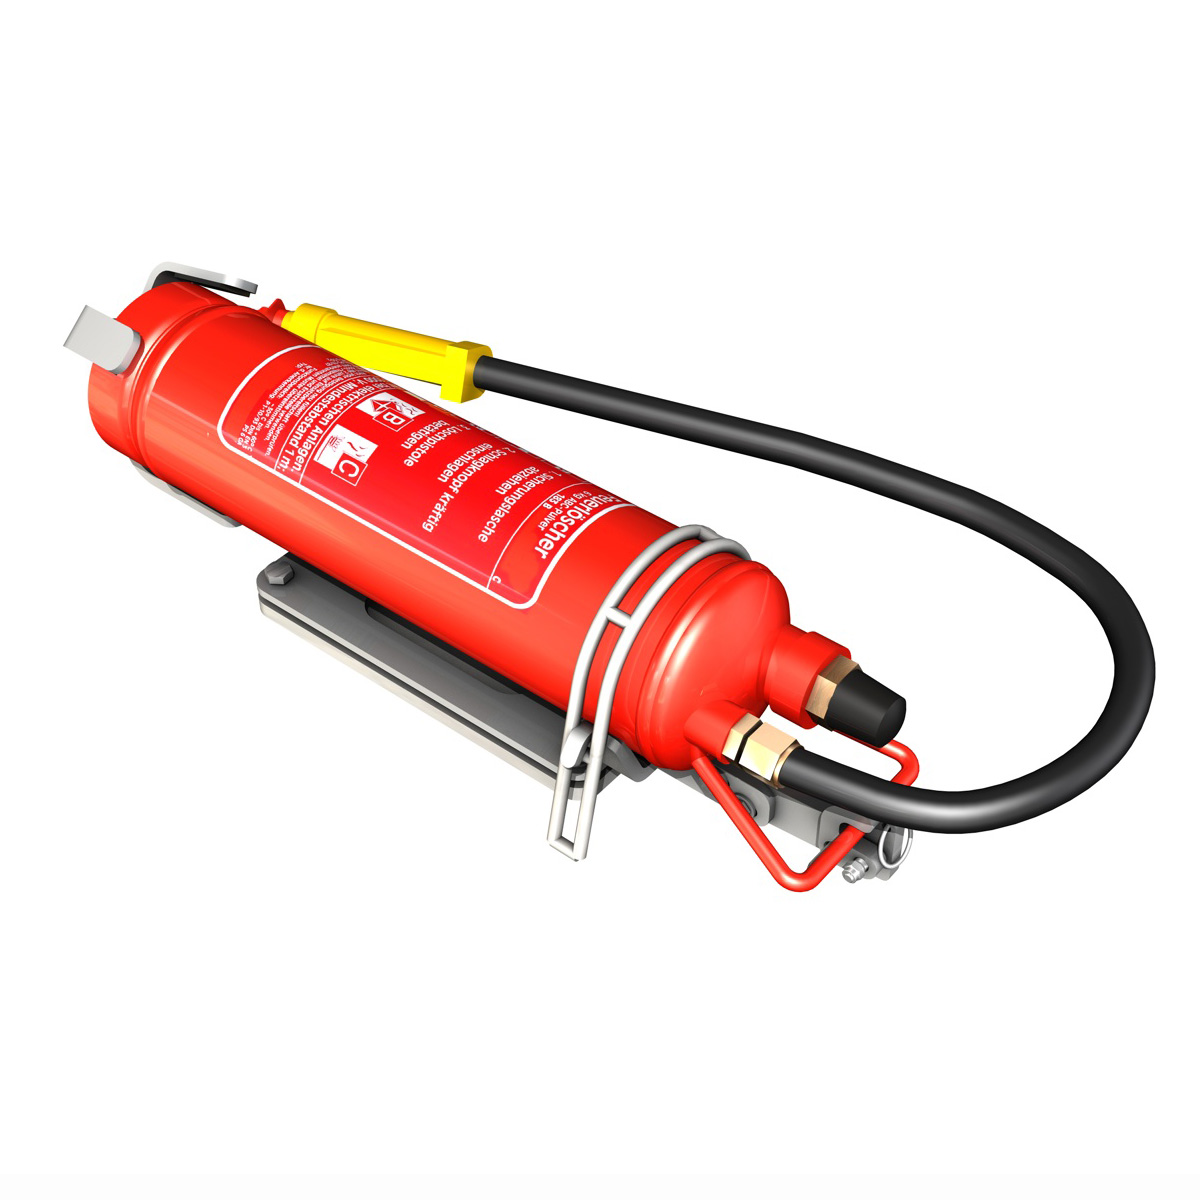 fire extinguisher with vehicle mounting 3d model 3ds fbx c4d lwo obj 188491